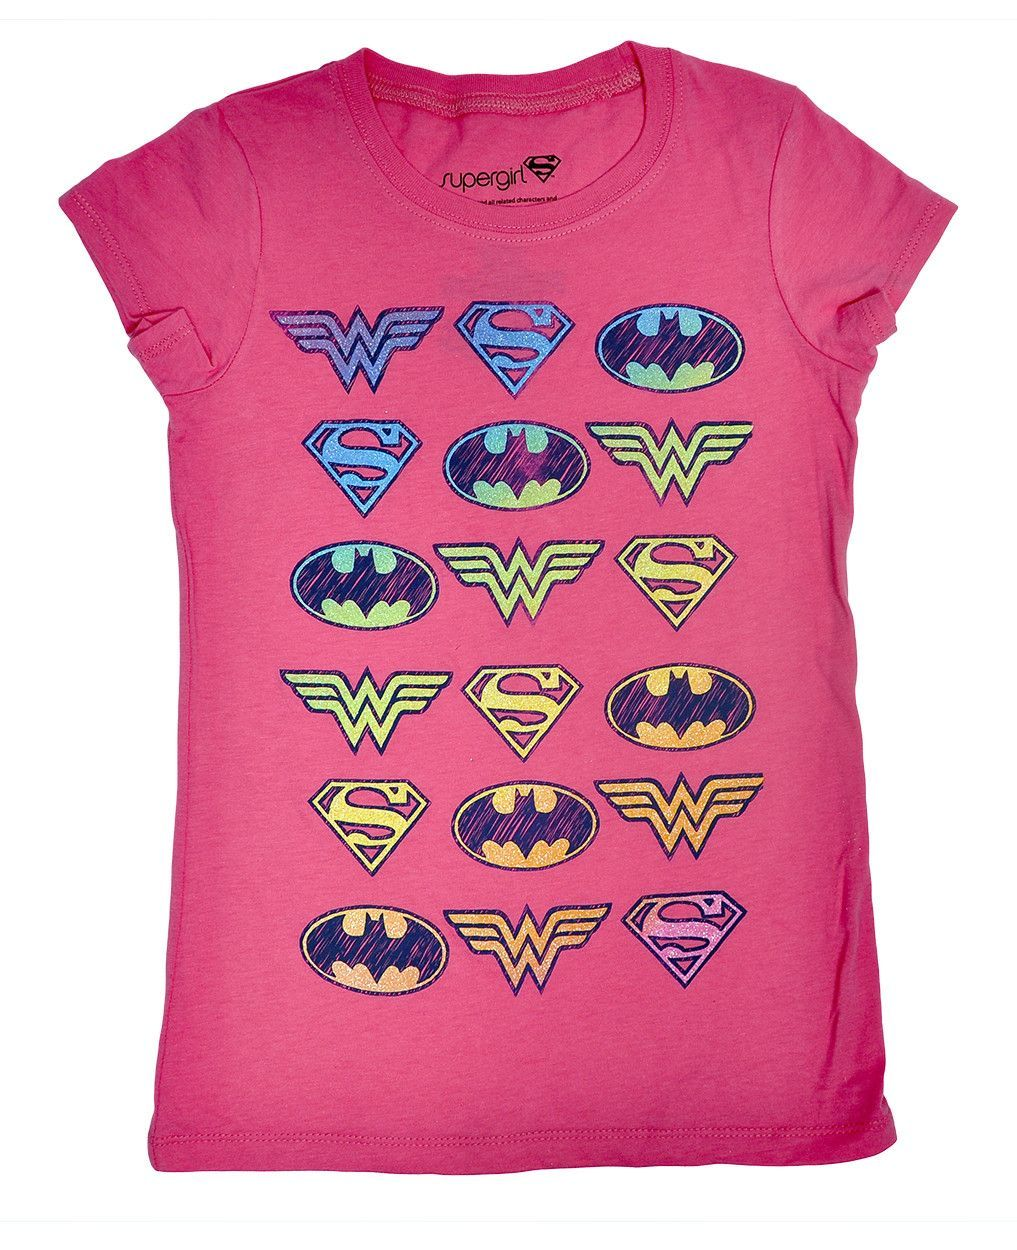 babecc1b Pink Superhero Girls Tee - Featuring glittery logos Supergirl, Wonder Woman  and Batgirl graphic print on front. - 60% cotton, 40% polyester - soft and  ...